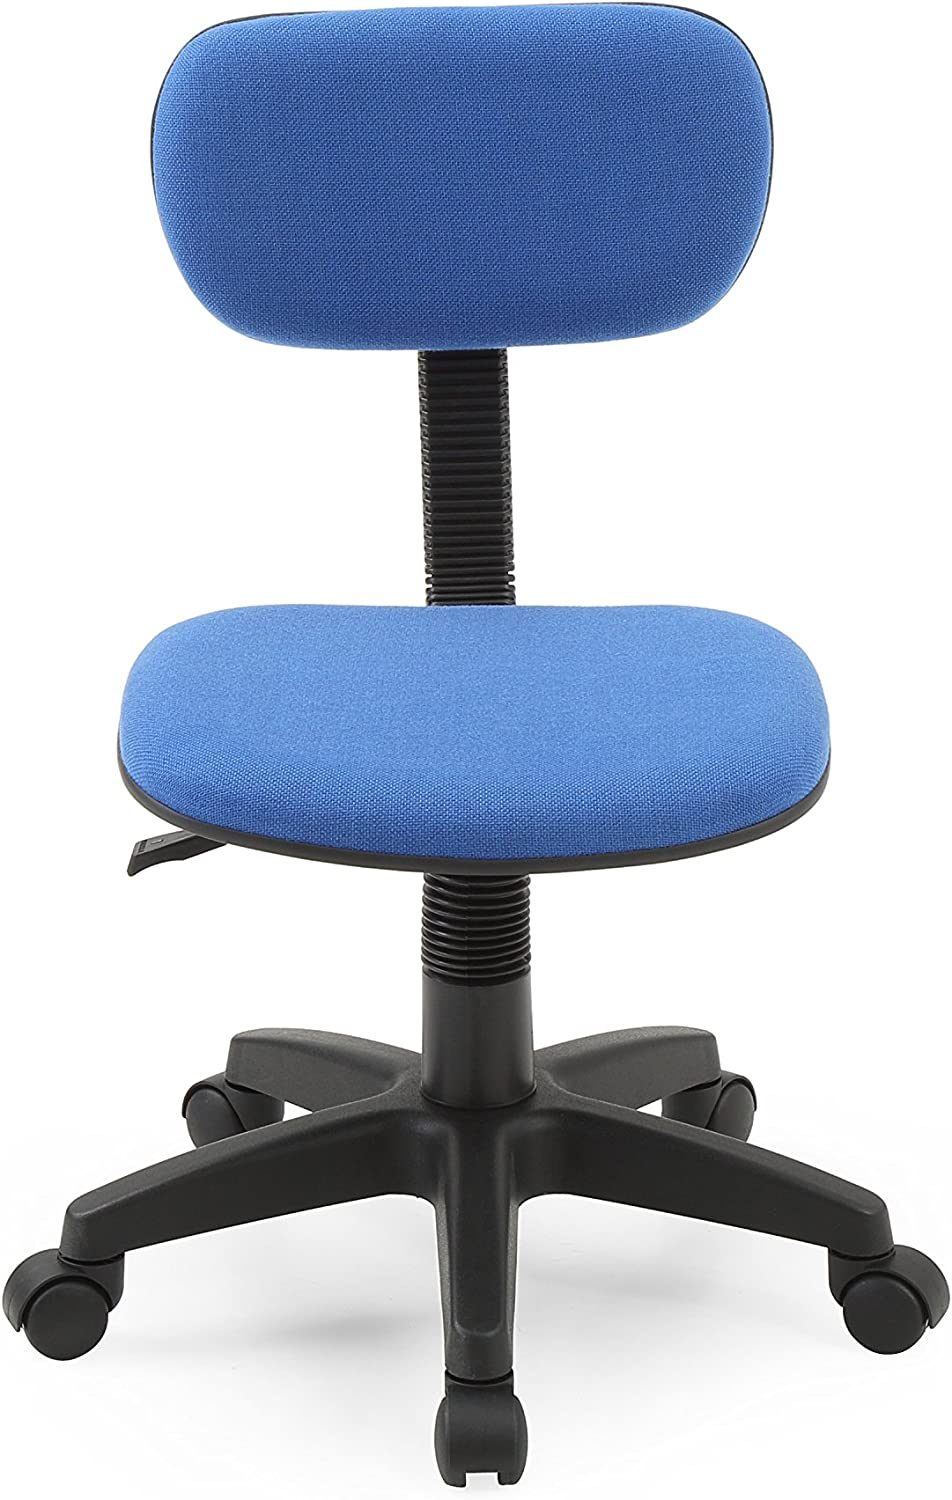 Hodedah Armless Low-Back Chair – A cheap chair that can be used for sewing